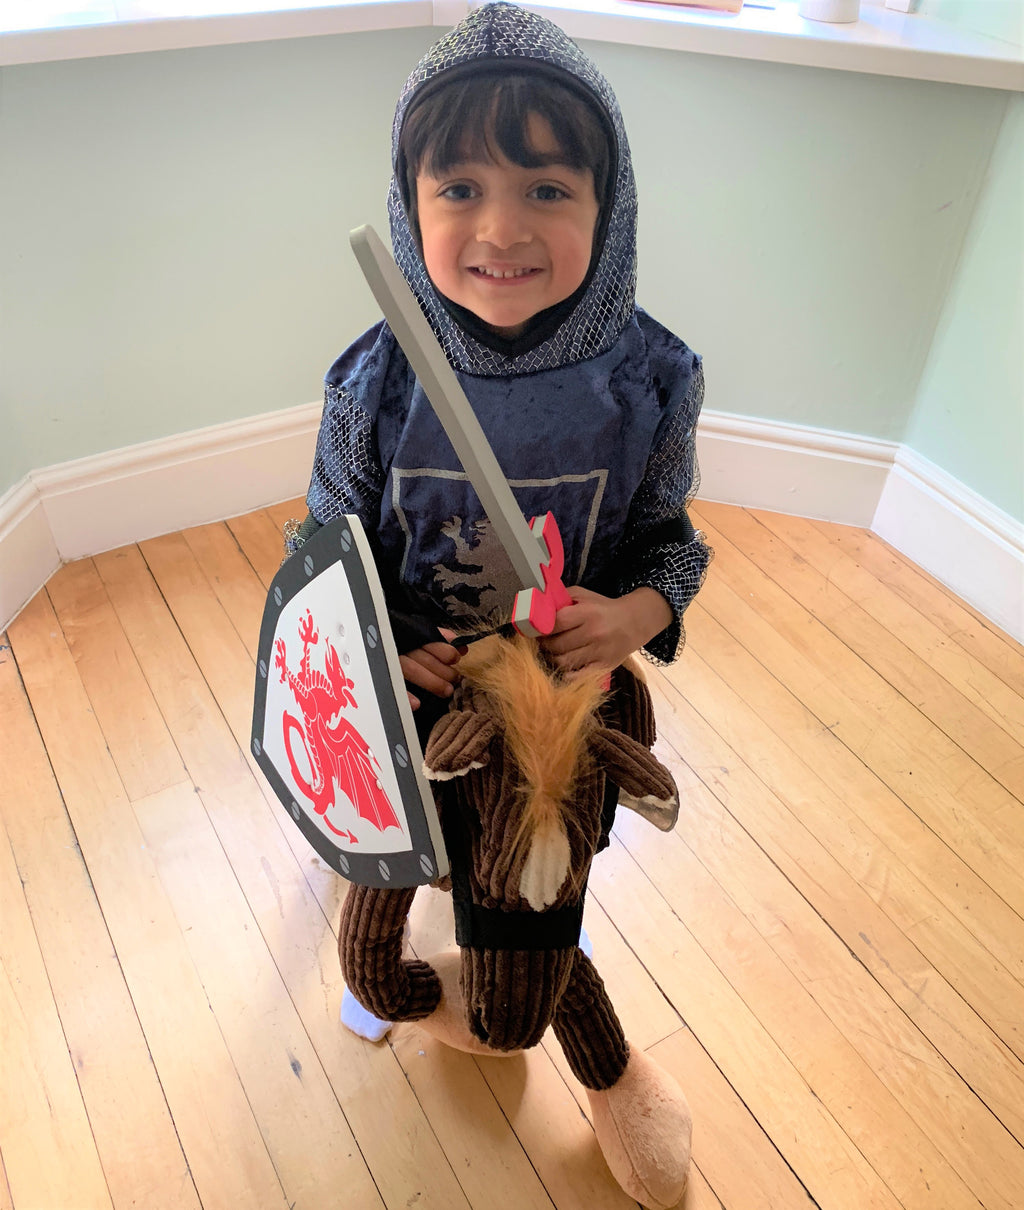 Children's Knight Crusader Tabard with Sword and Shield